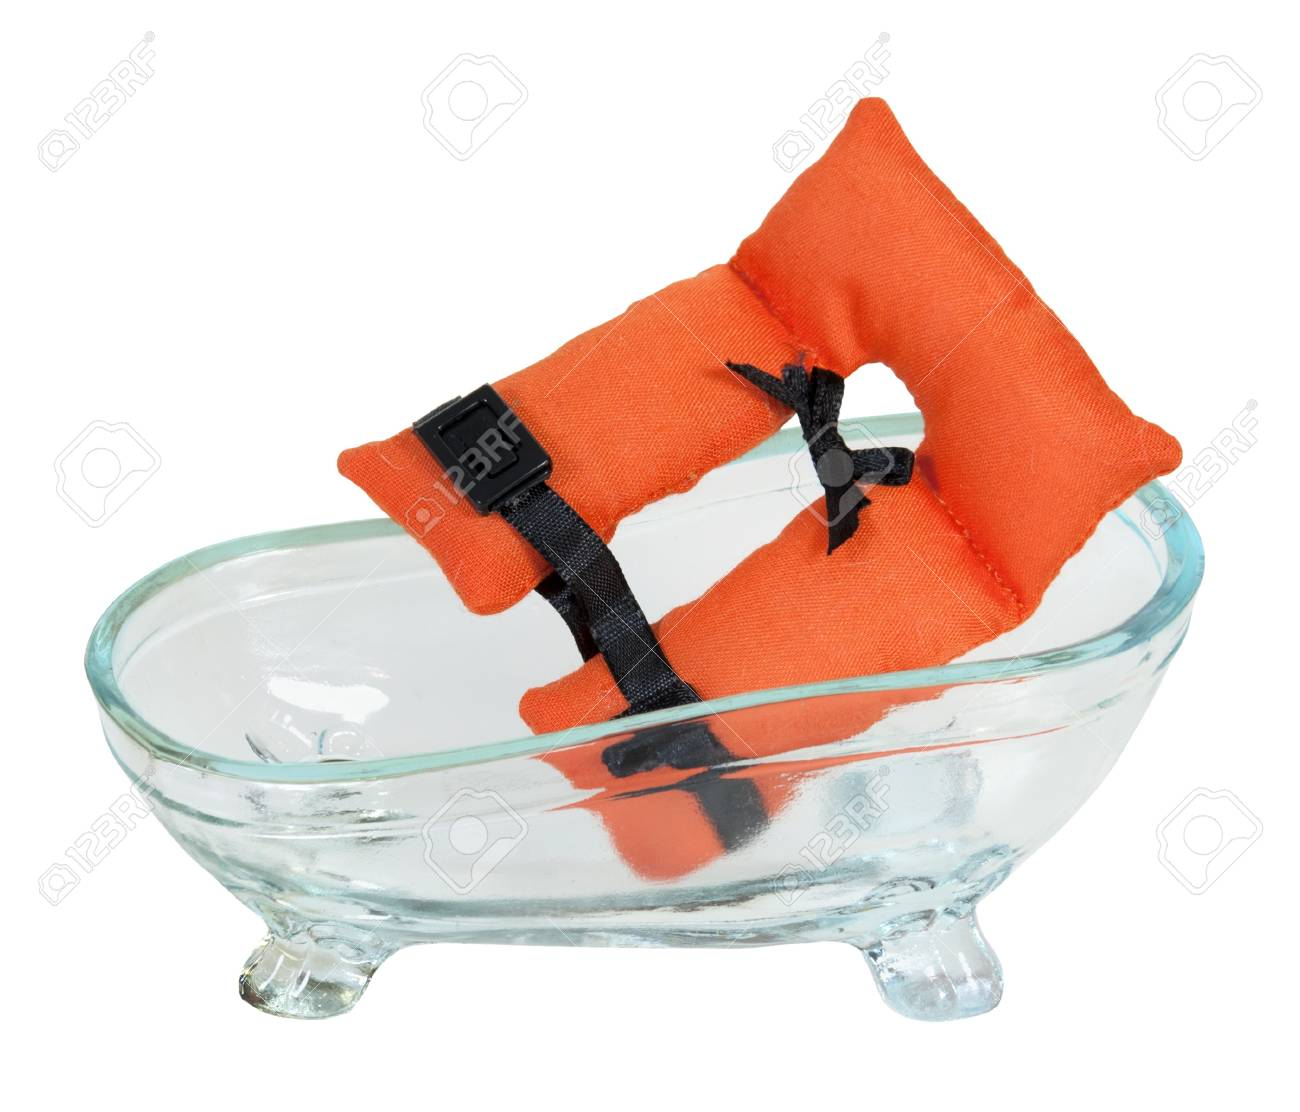 Life Vest With Security Belts In A Bathtub For Nautical Safety ...